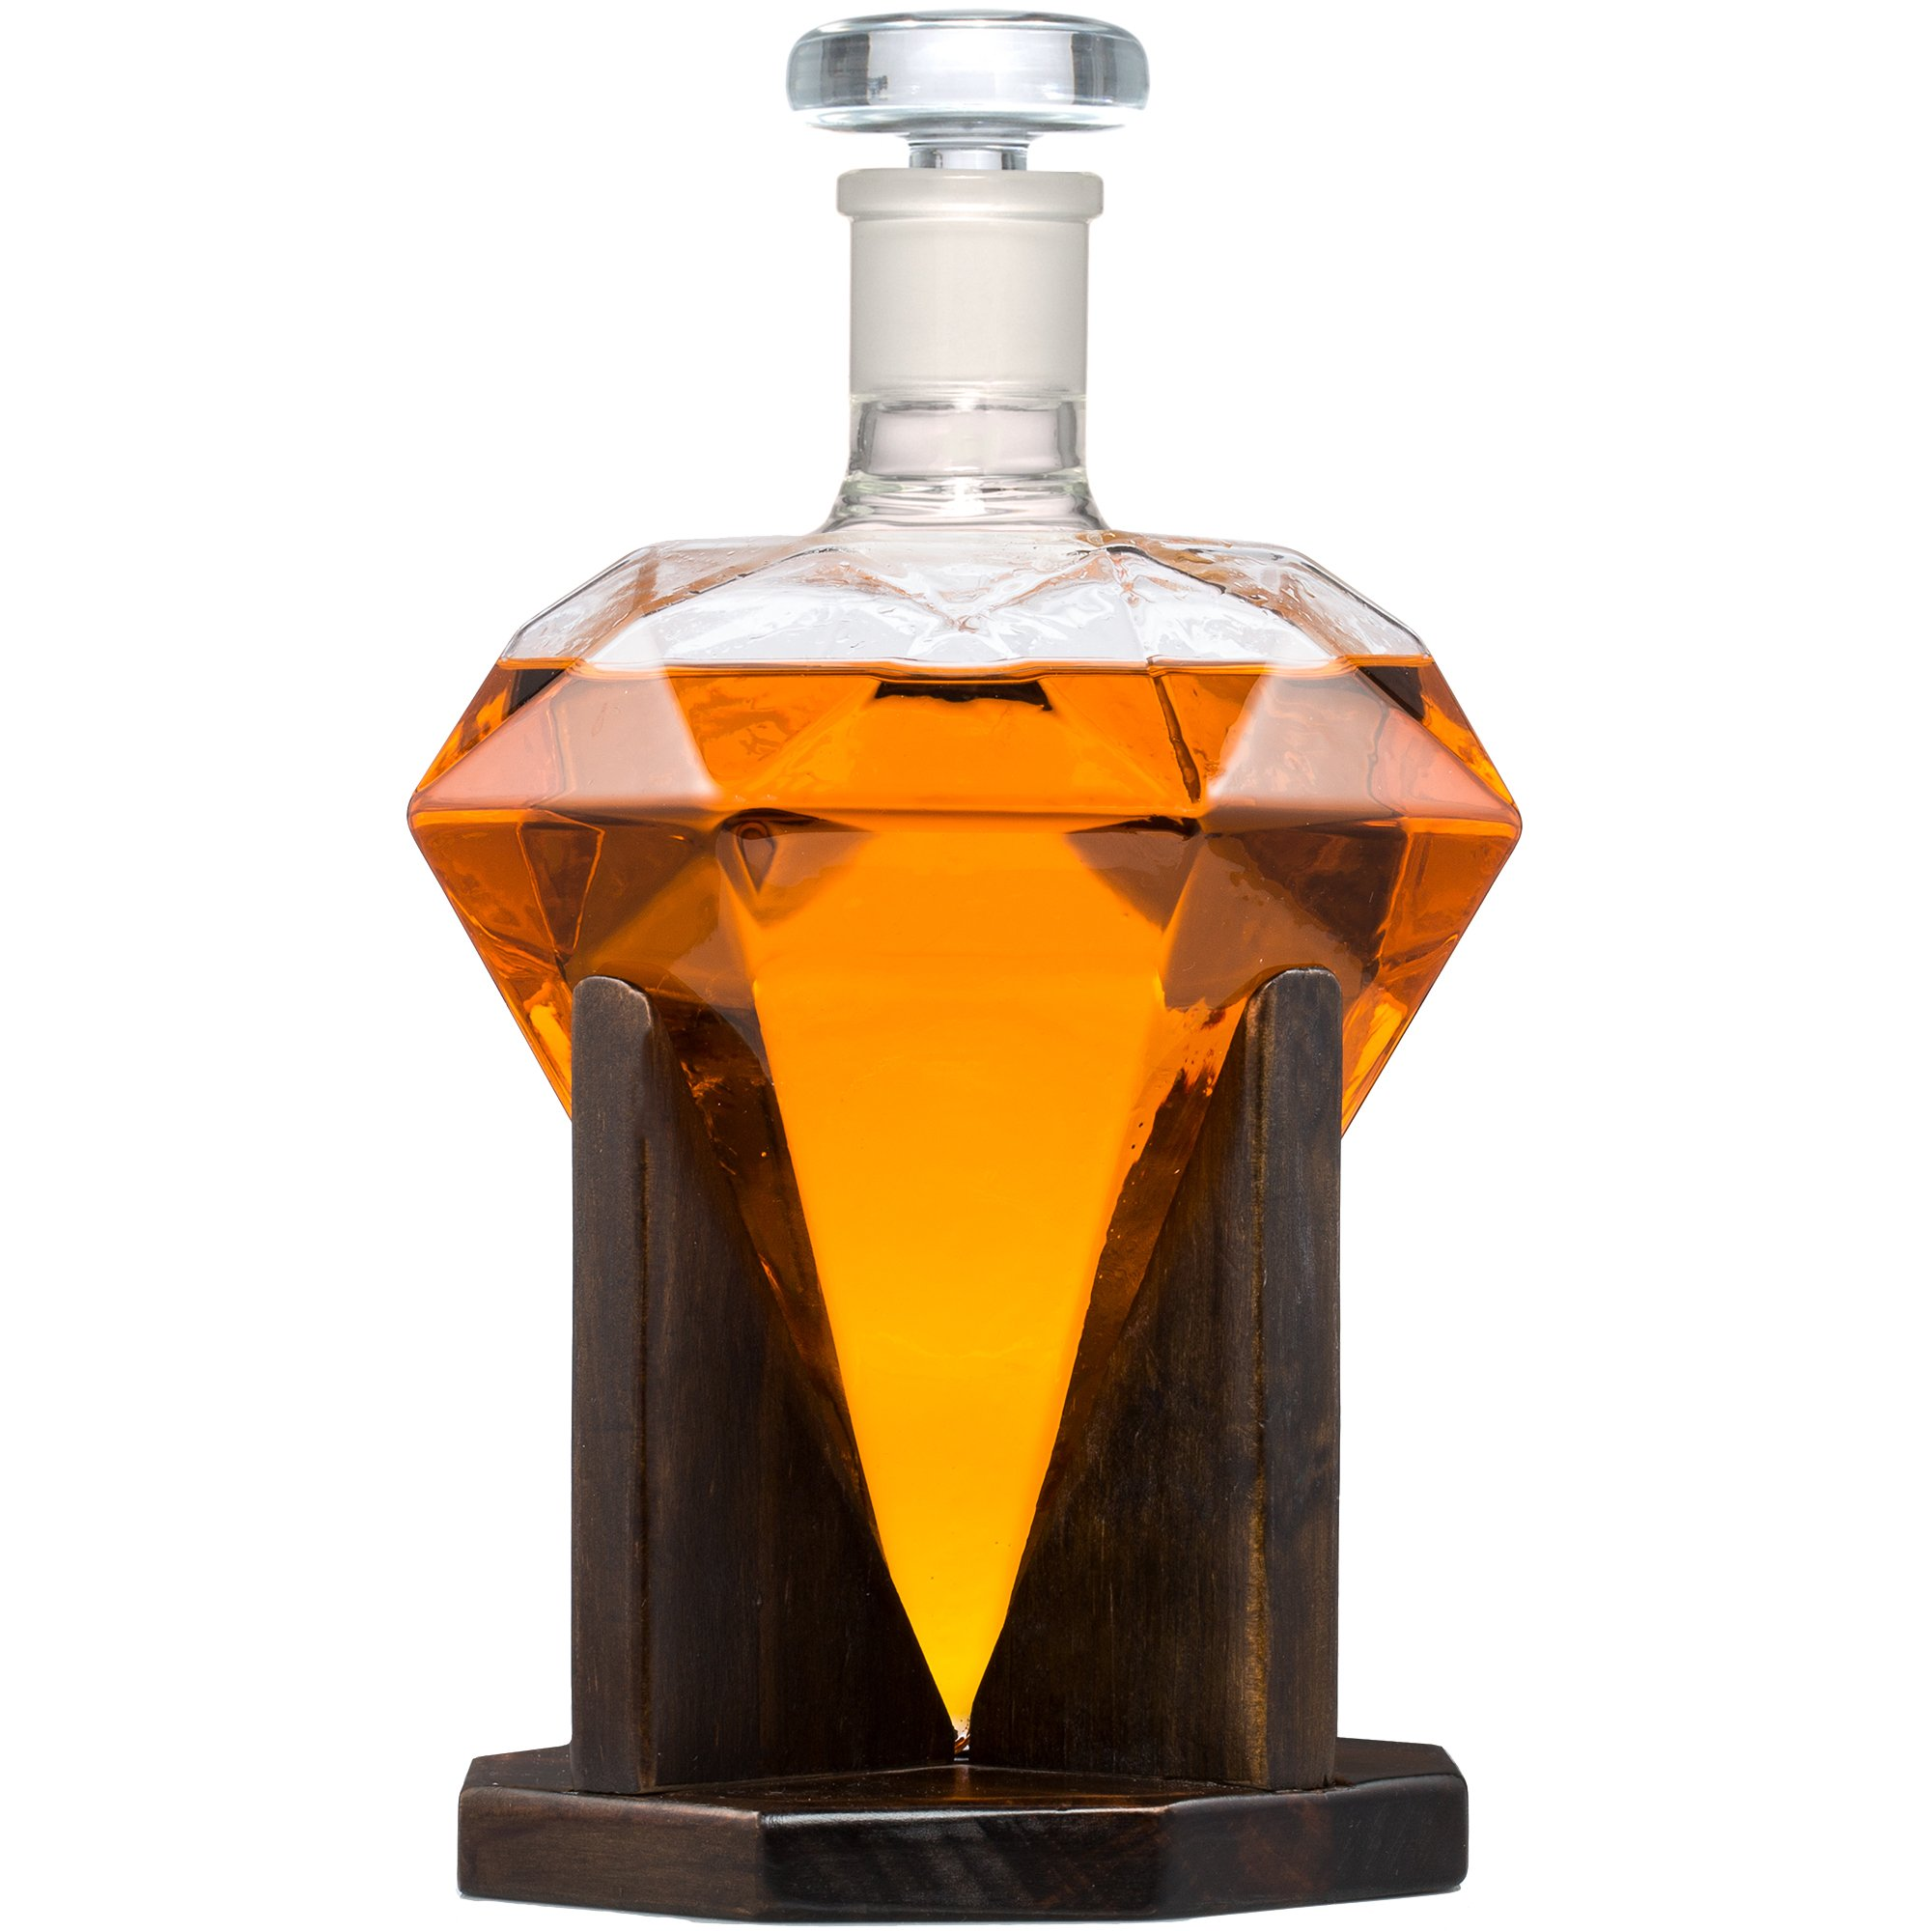 Diamond Shaped Whiskey Decanter - 33 Oz Scotch Decanter - Artfully Crafted Decanter For Wine, Brandy, Bourbon, Tequila, Liquor, Juice, Water- Glass Decanter With Ground Glass Stopper By Ultimate Touch